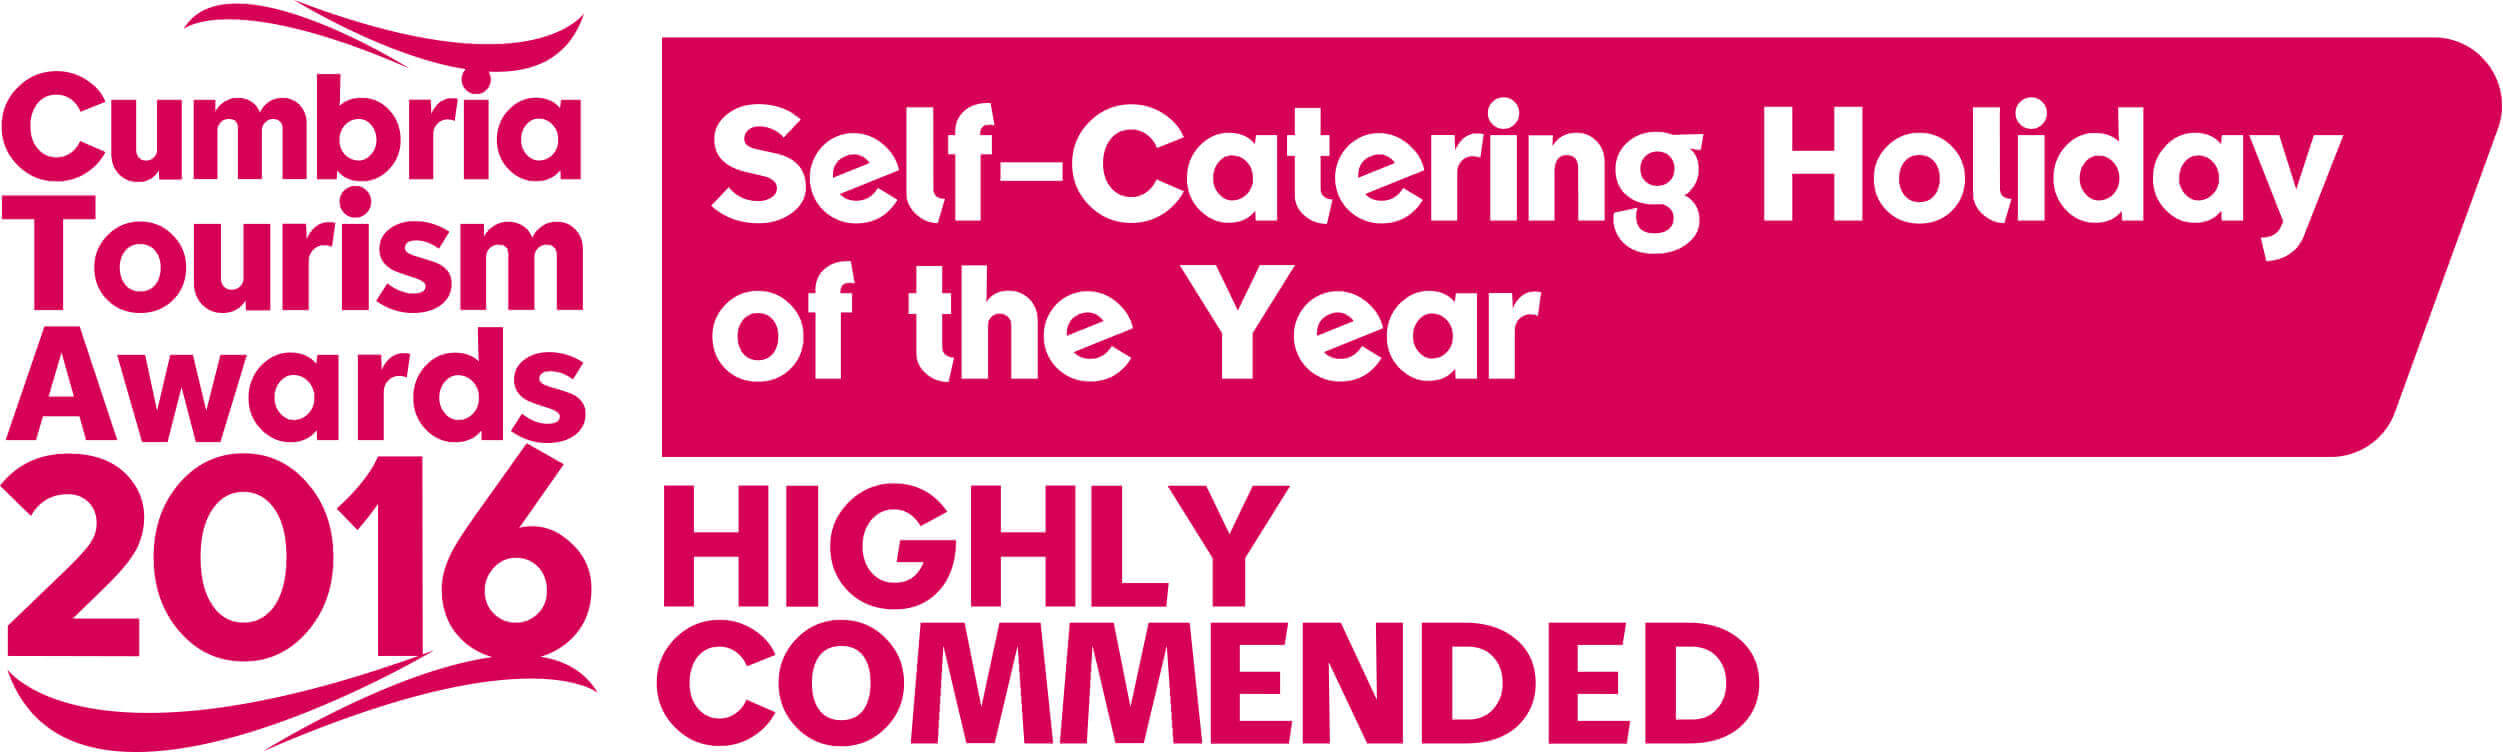 Self-Catering Holiday of the Year - Highly Commended